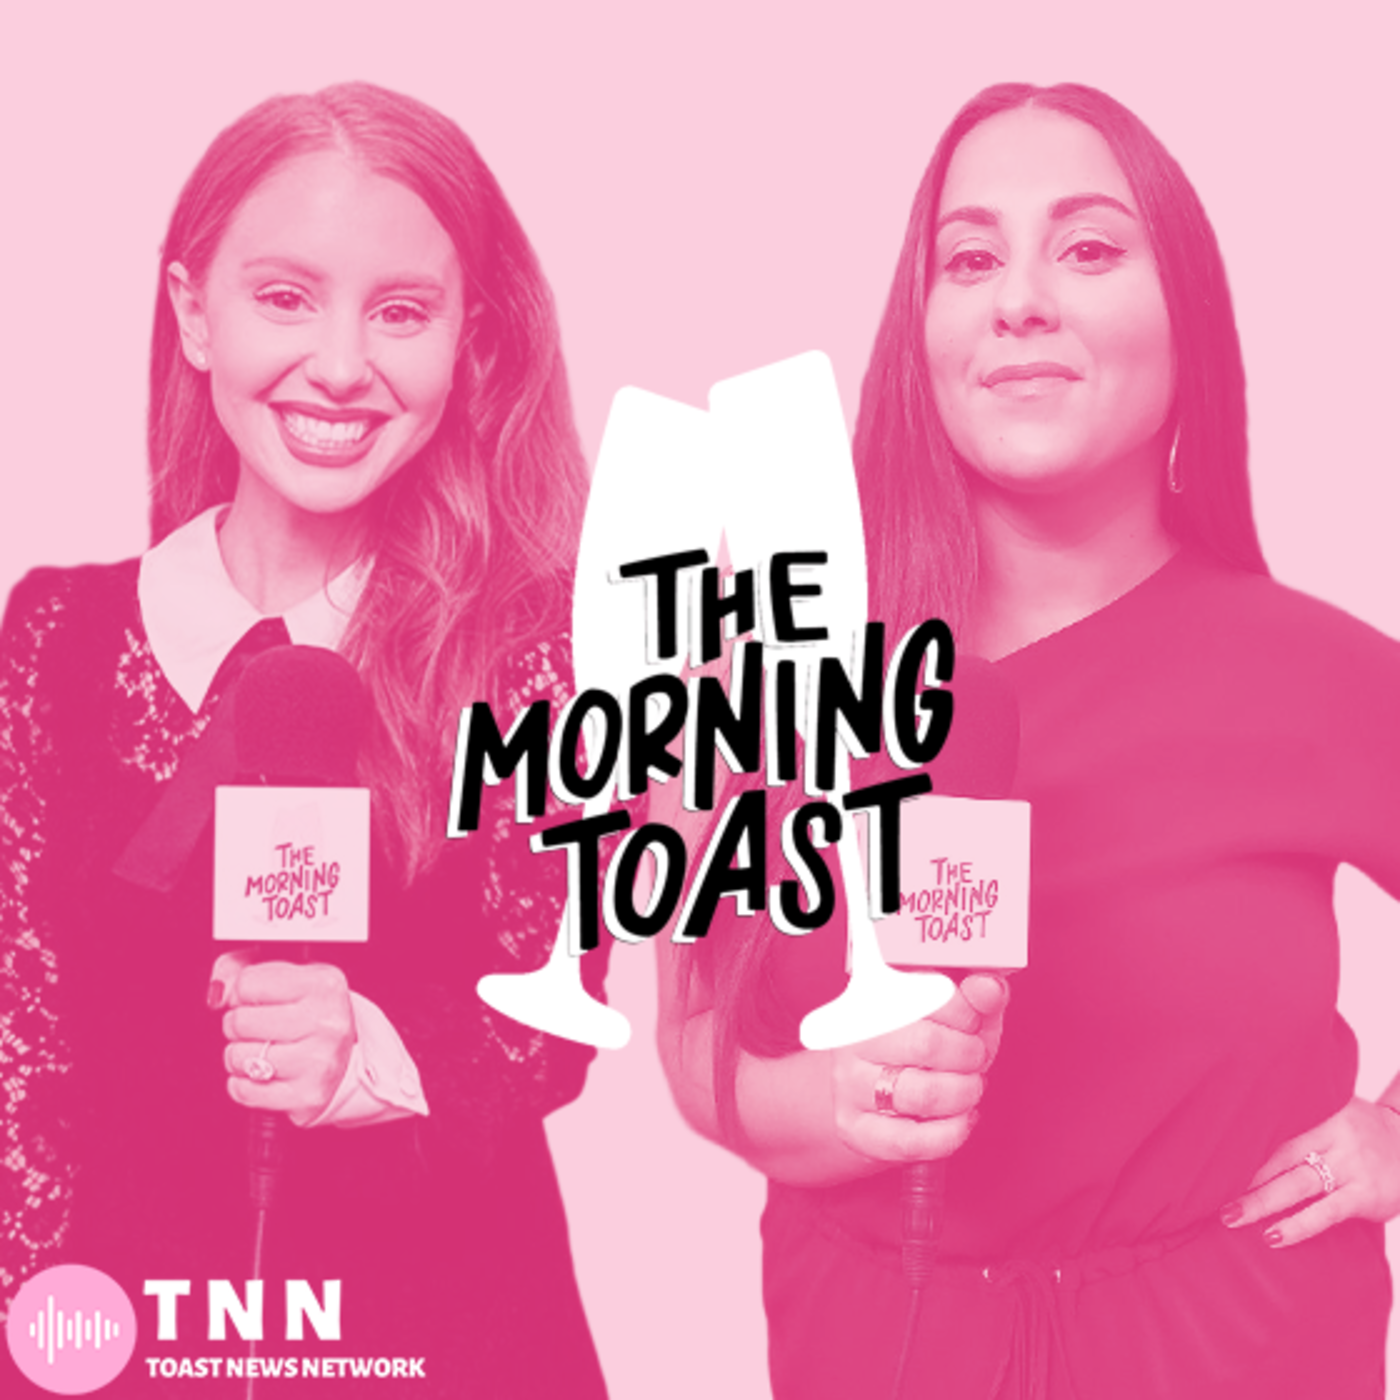 The Morning Toast podcast logo